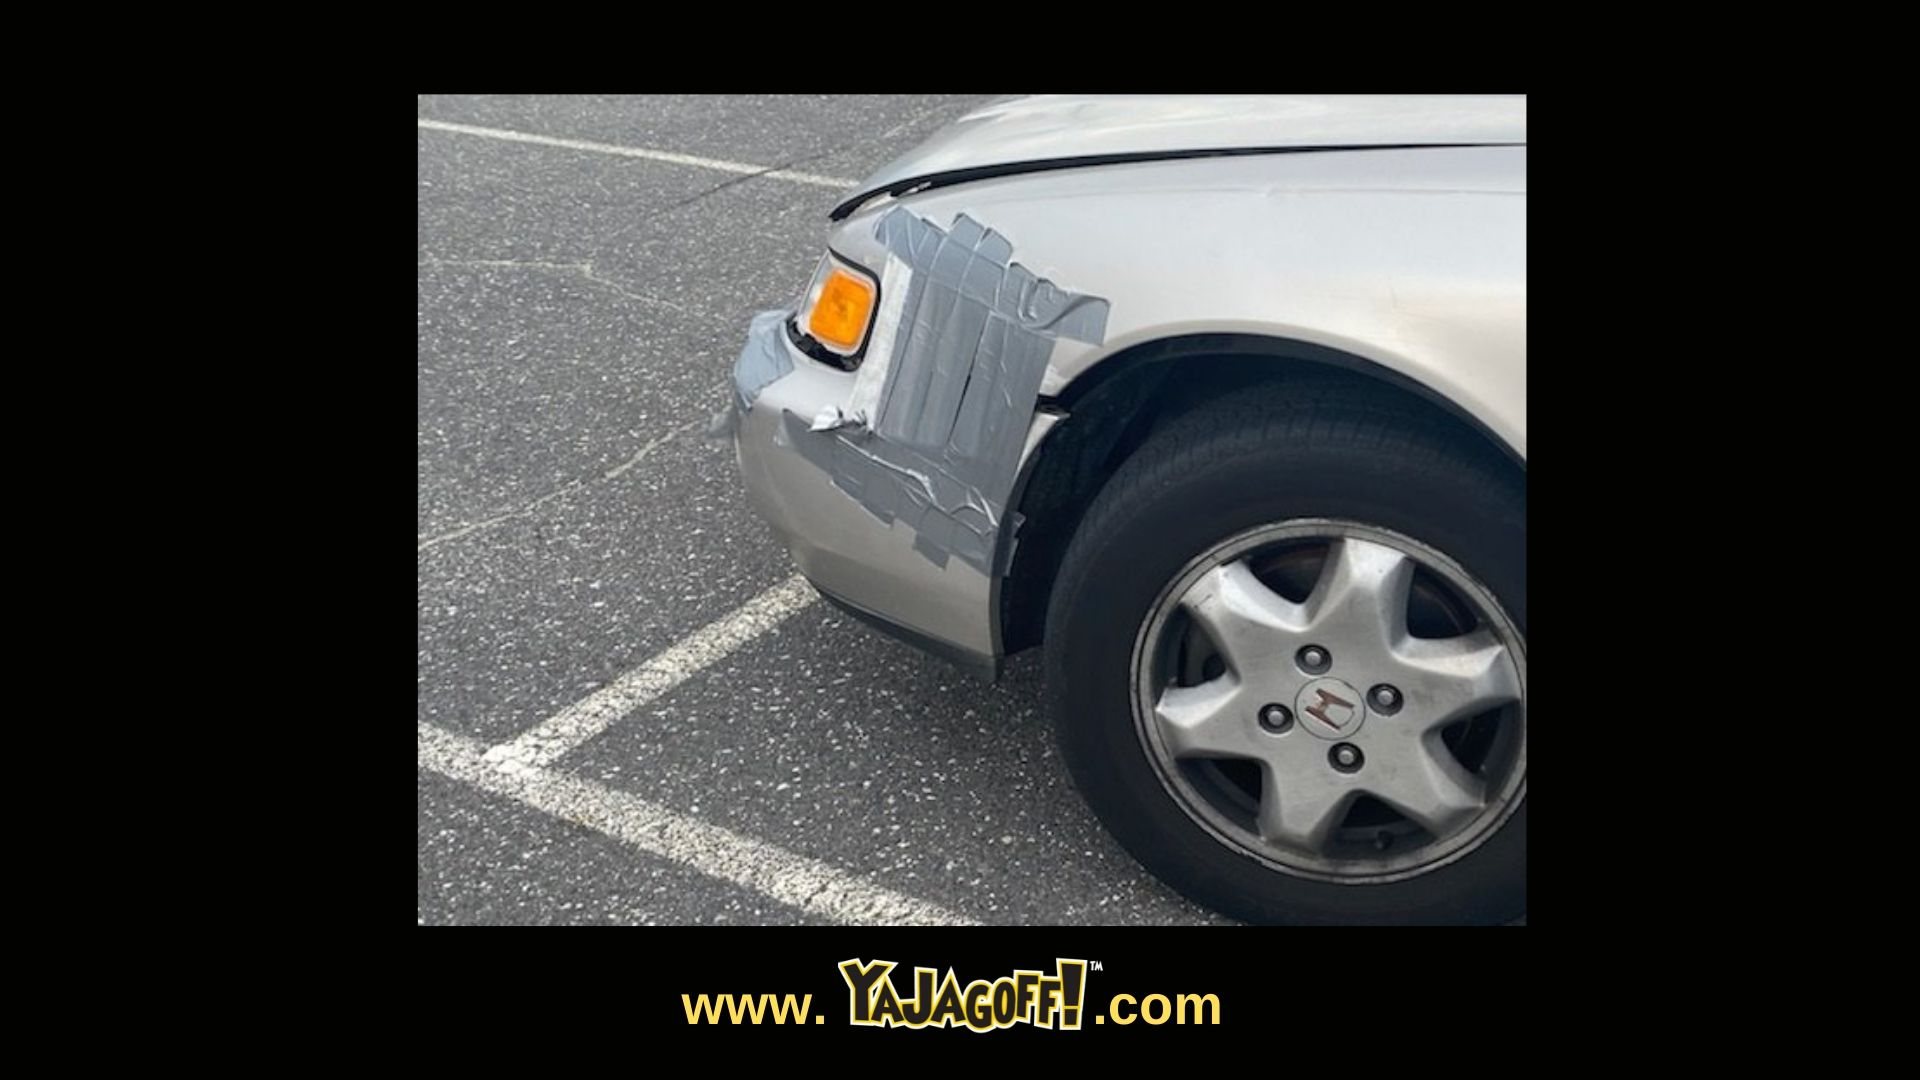 YaJagoff Blog and Podcast Car with Duct Tape